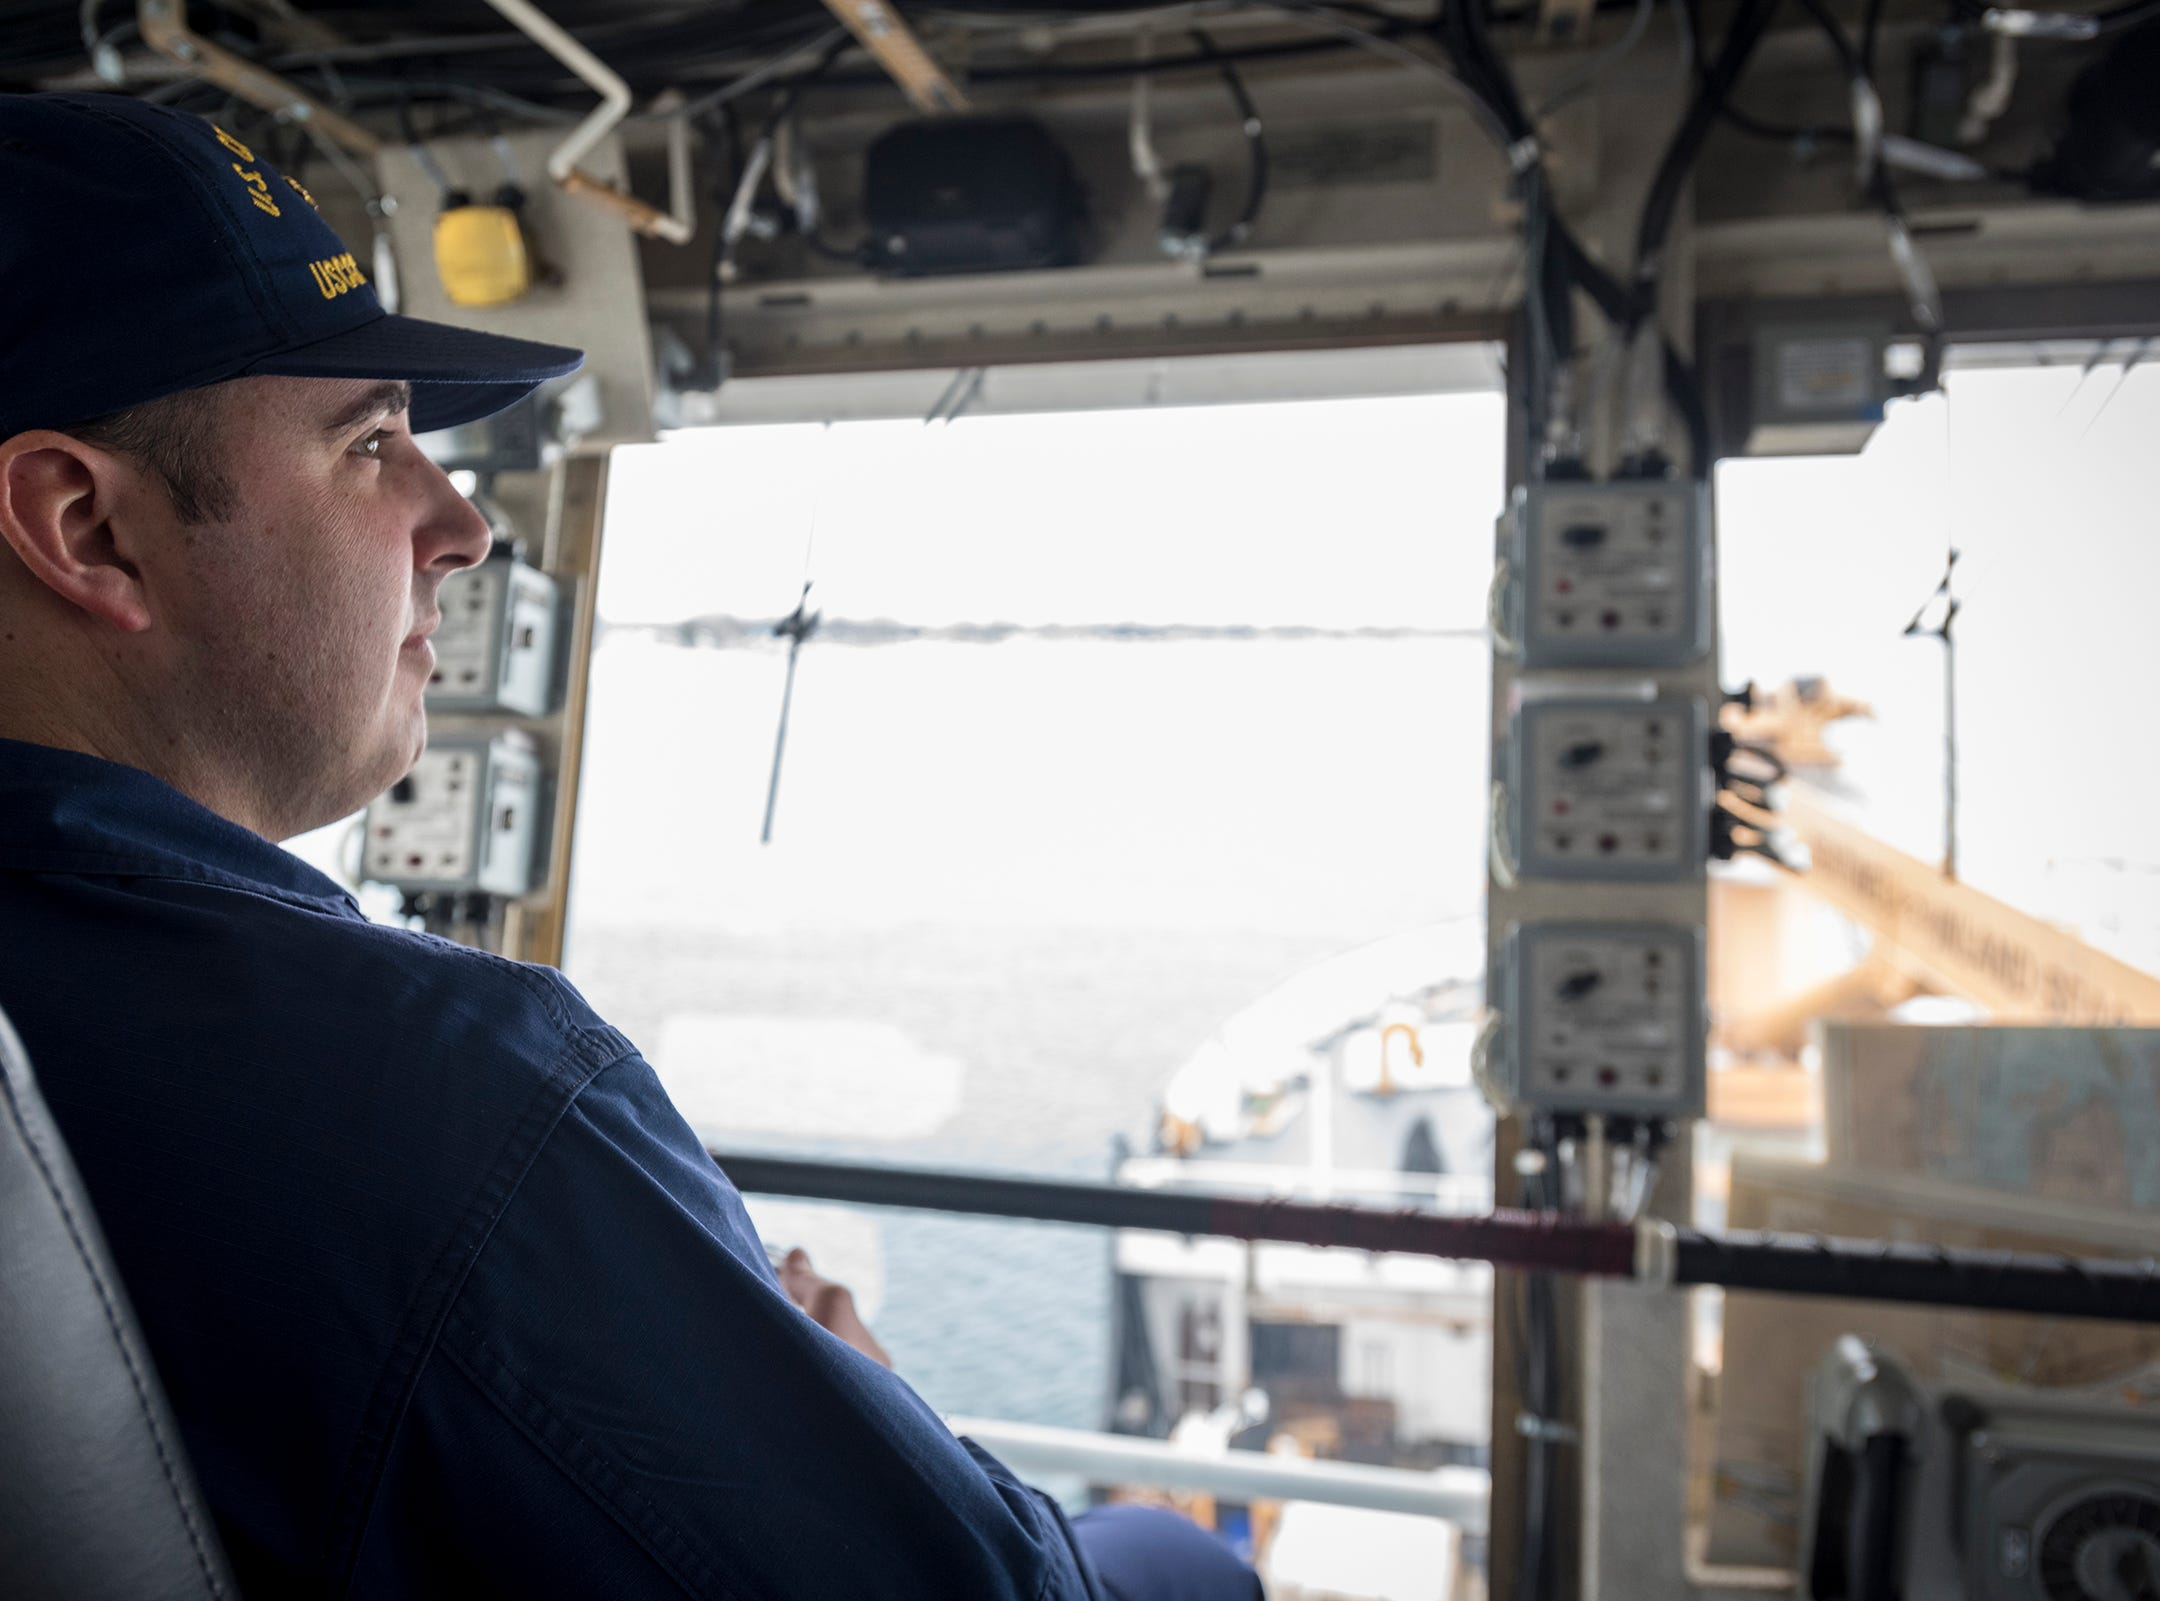 U.S. Coast Guard Lt. Cmdr. Nick Monacelli looks out over the deck of the USCGC Hollyhock as it is downbound Wednesday, Feb. 20, 2019 on the St. Clair River. Monacelli said this year has seen more icing in the area than last year. During the polar vortex, the surface of the river froze to a solid plate, and the river was closed. Ice breaking missions can only do so much, Monacelli said, and sometimes they would have to wait for the weather to change.